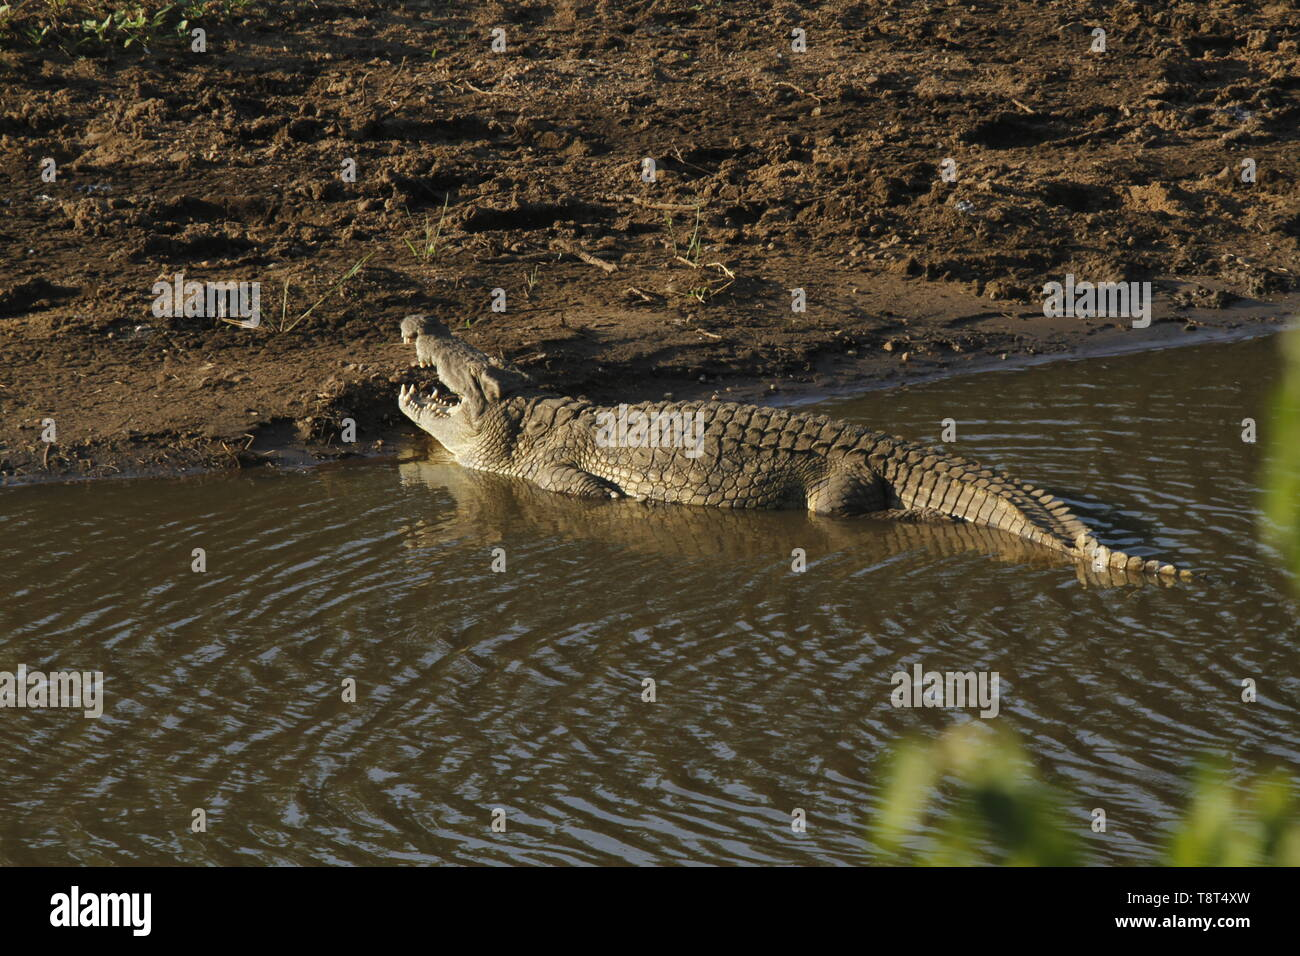 Large Nile crocodile at the edge of a river with mouth wide open - Stock Image